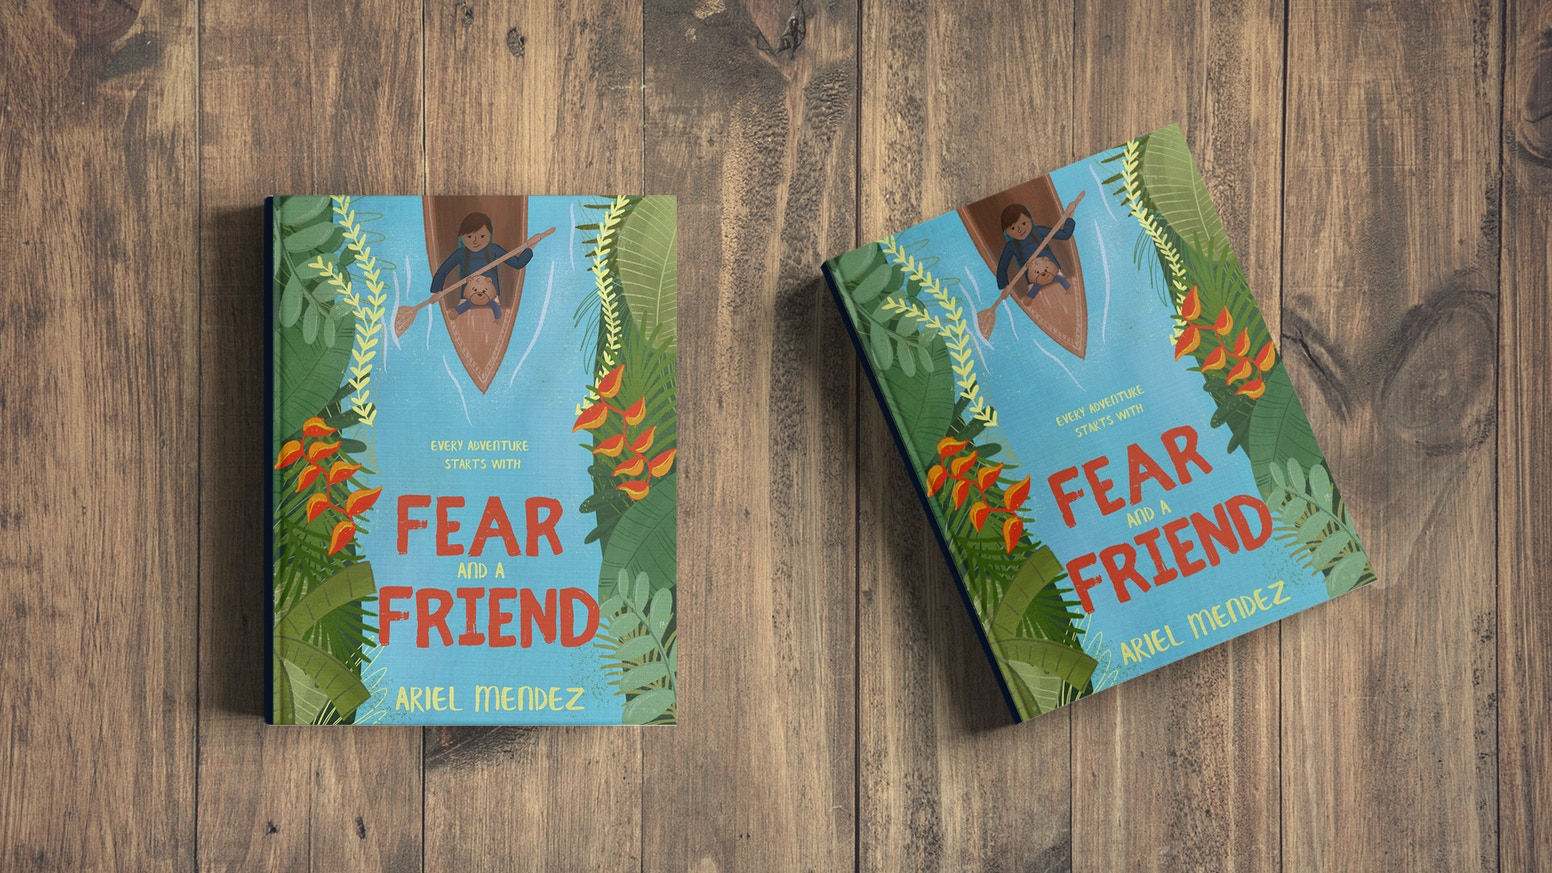 FEAR and a FRIEND || A children's picture book about fear, friendship, and the value of life experiences.